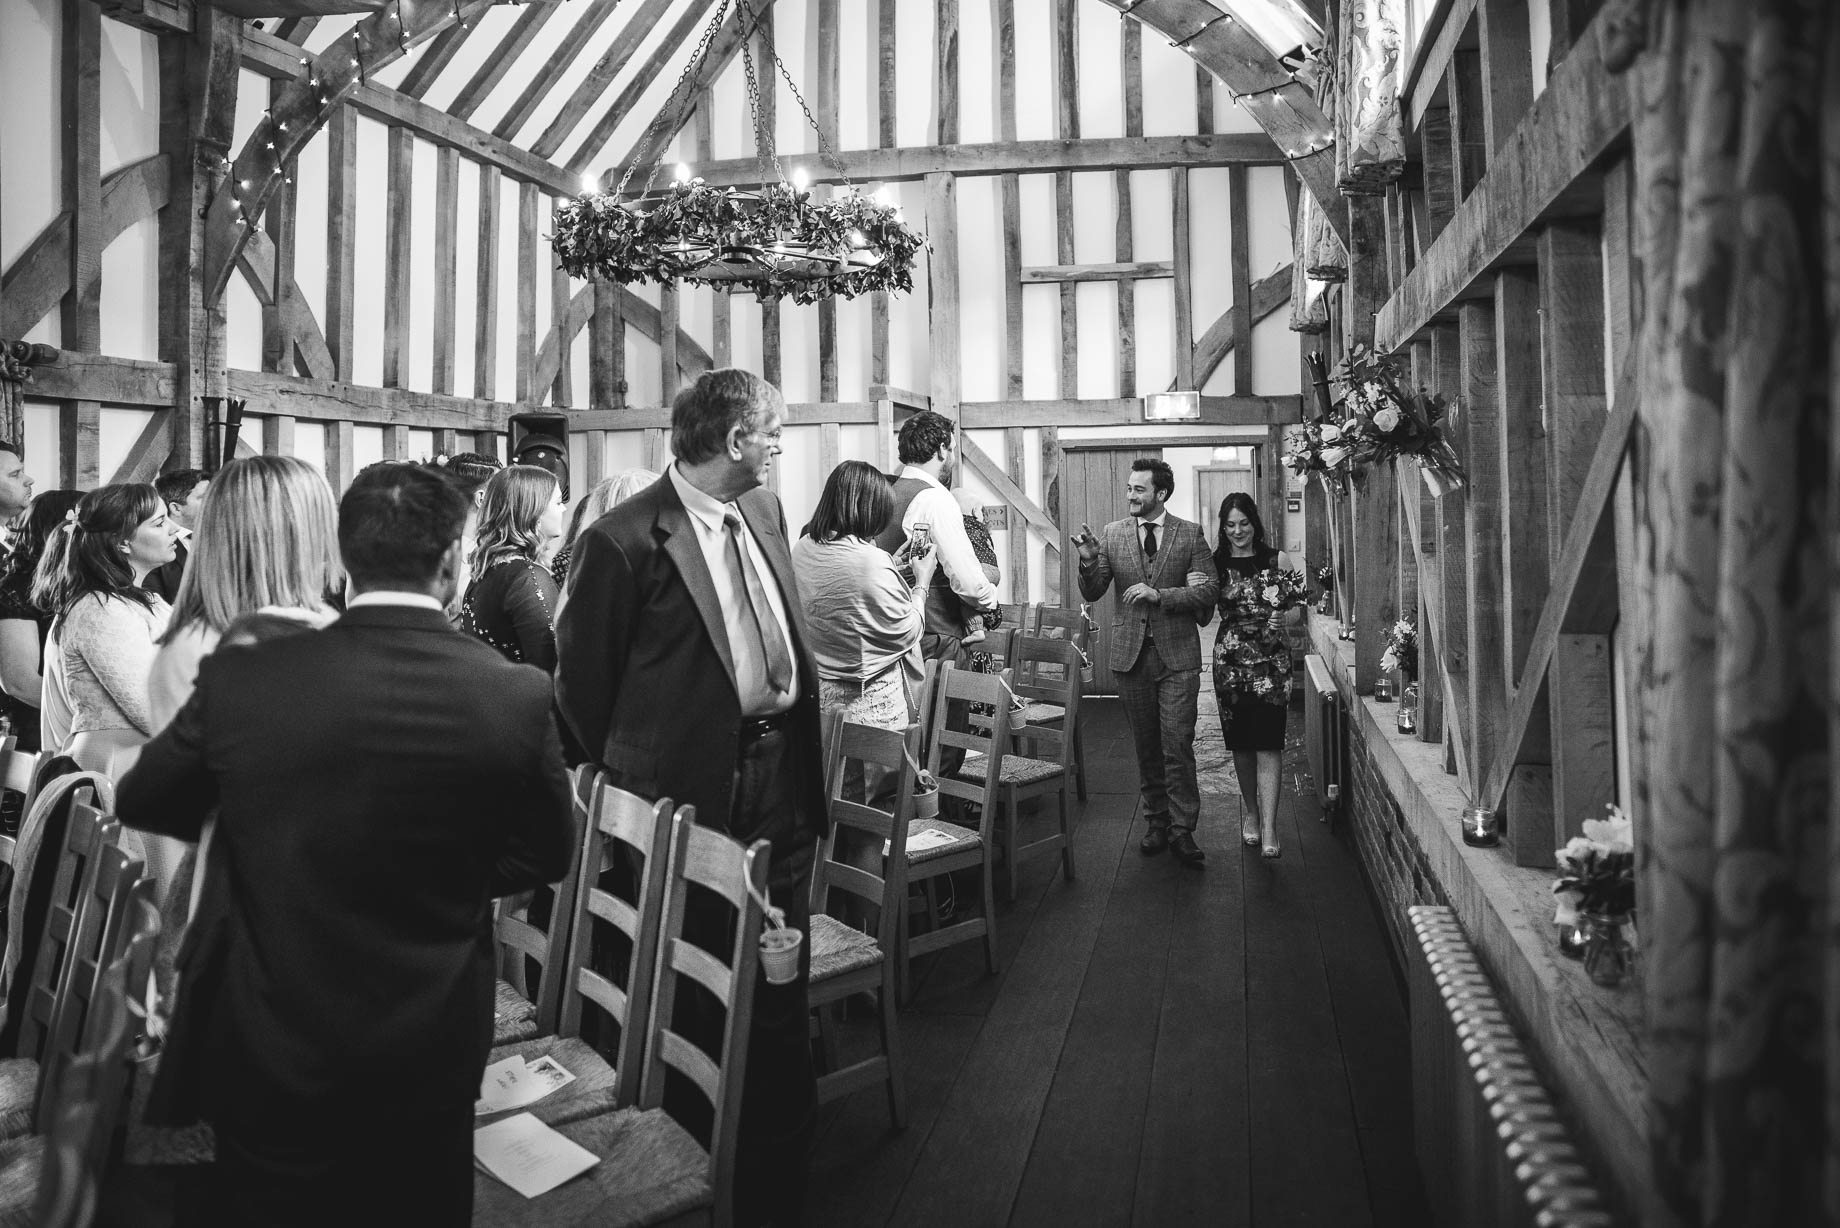 Surrey Wedding Photography by Guy Collier - Becca and James (31 of 145)